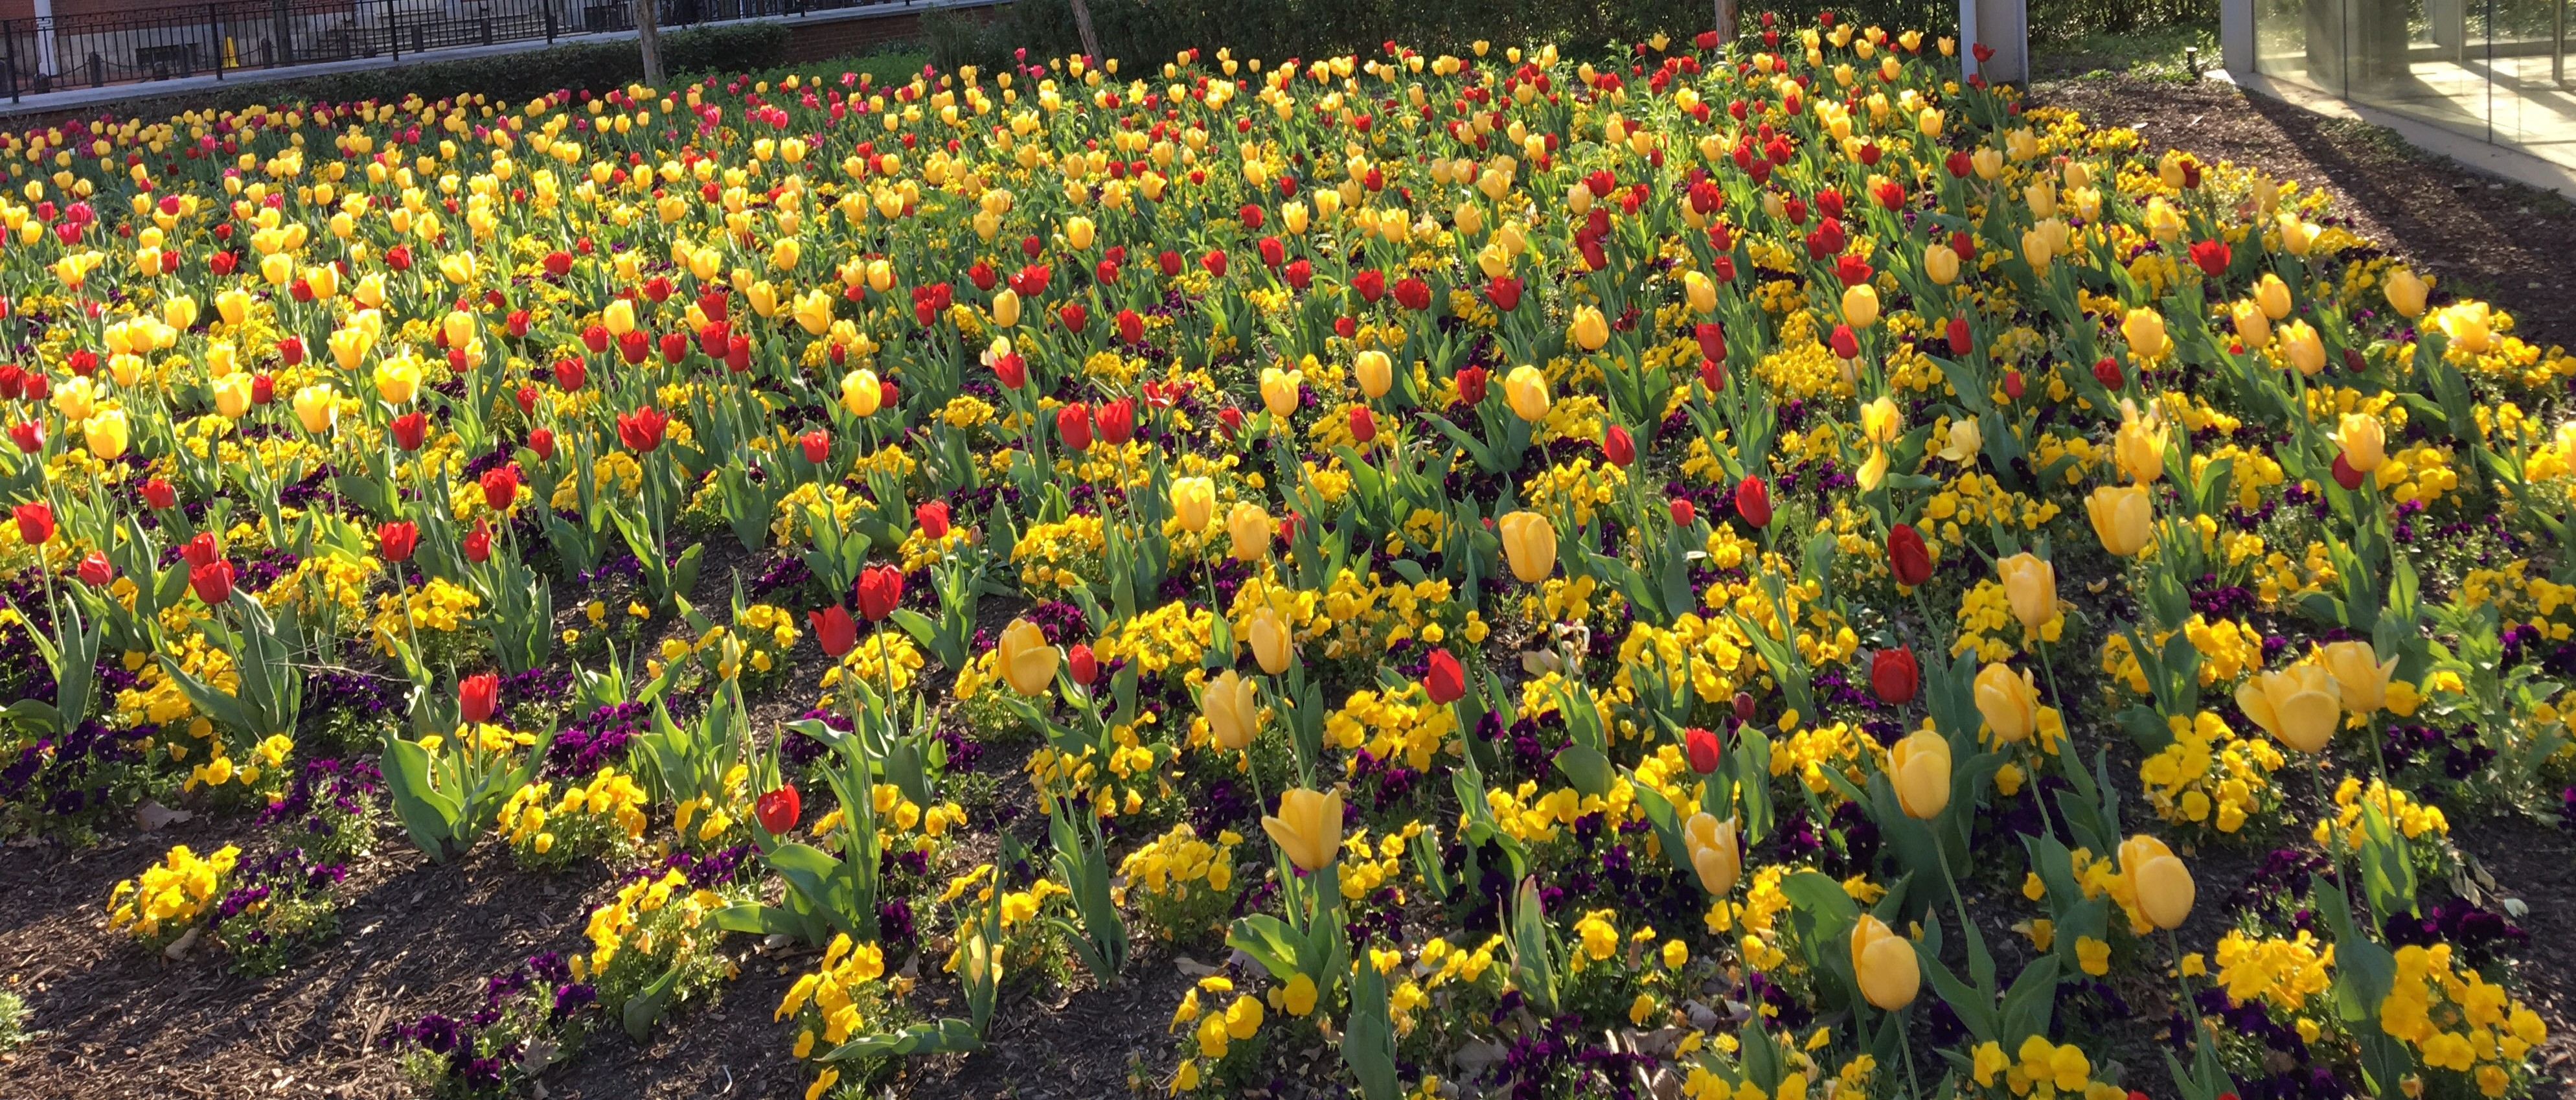 Photo of red and yellow tulips outside, courtesy of Mabel Chen.